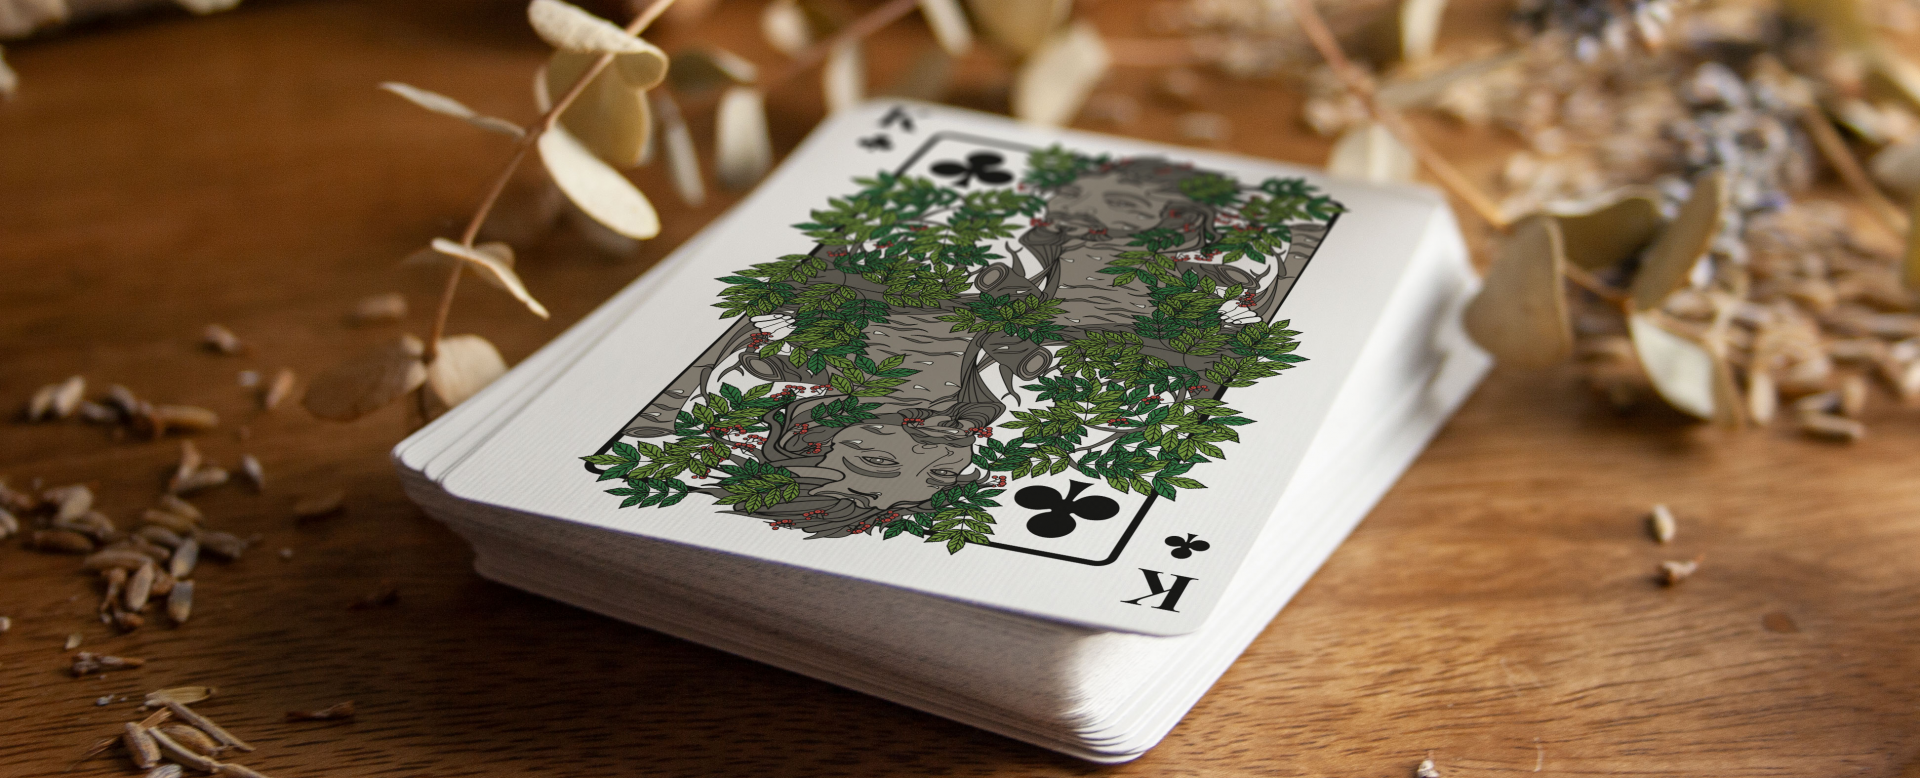 The Green Man Playing Cards